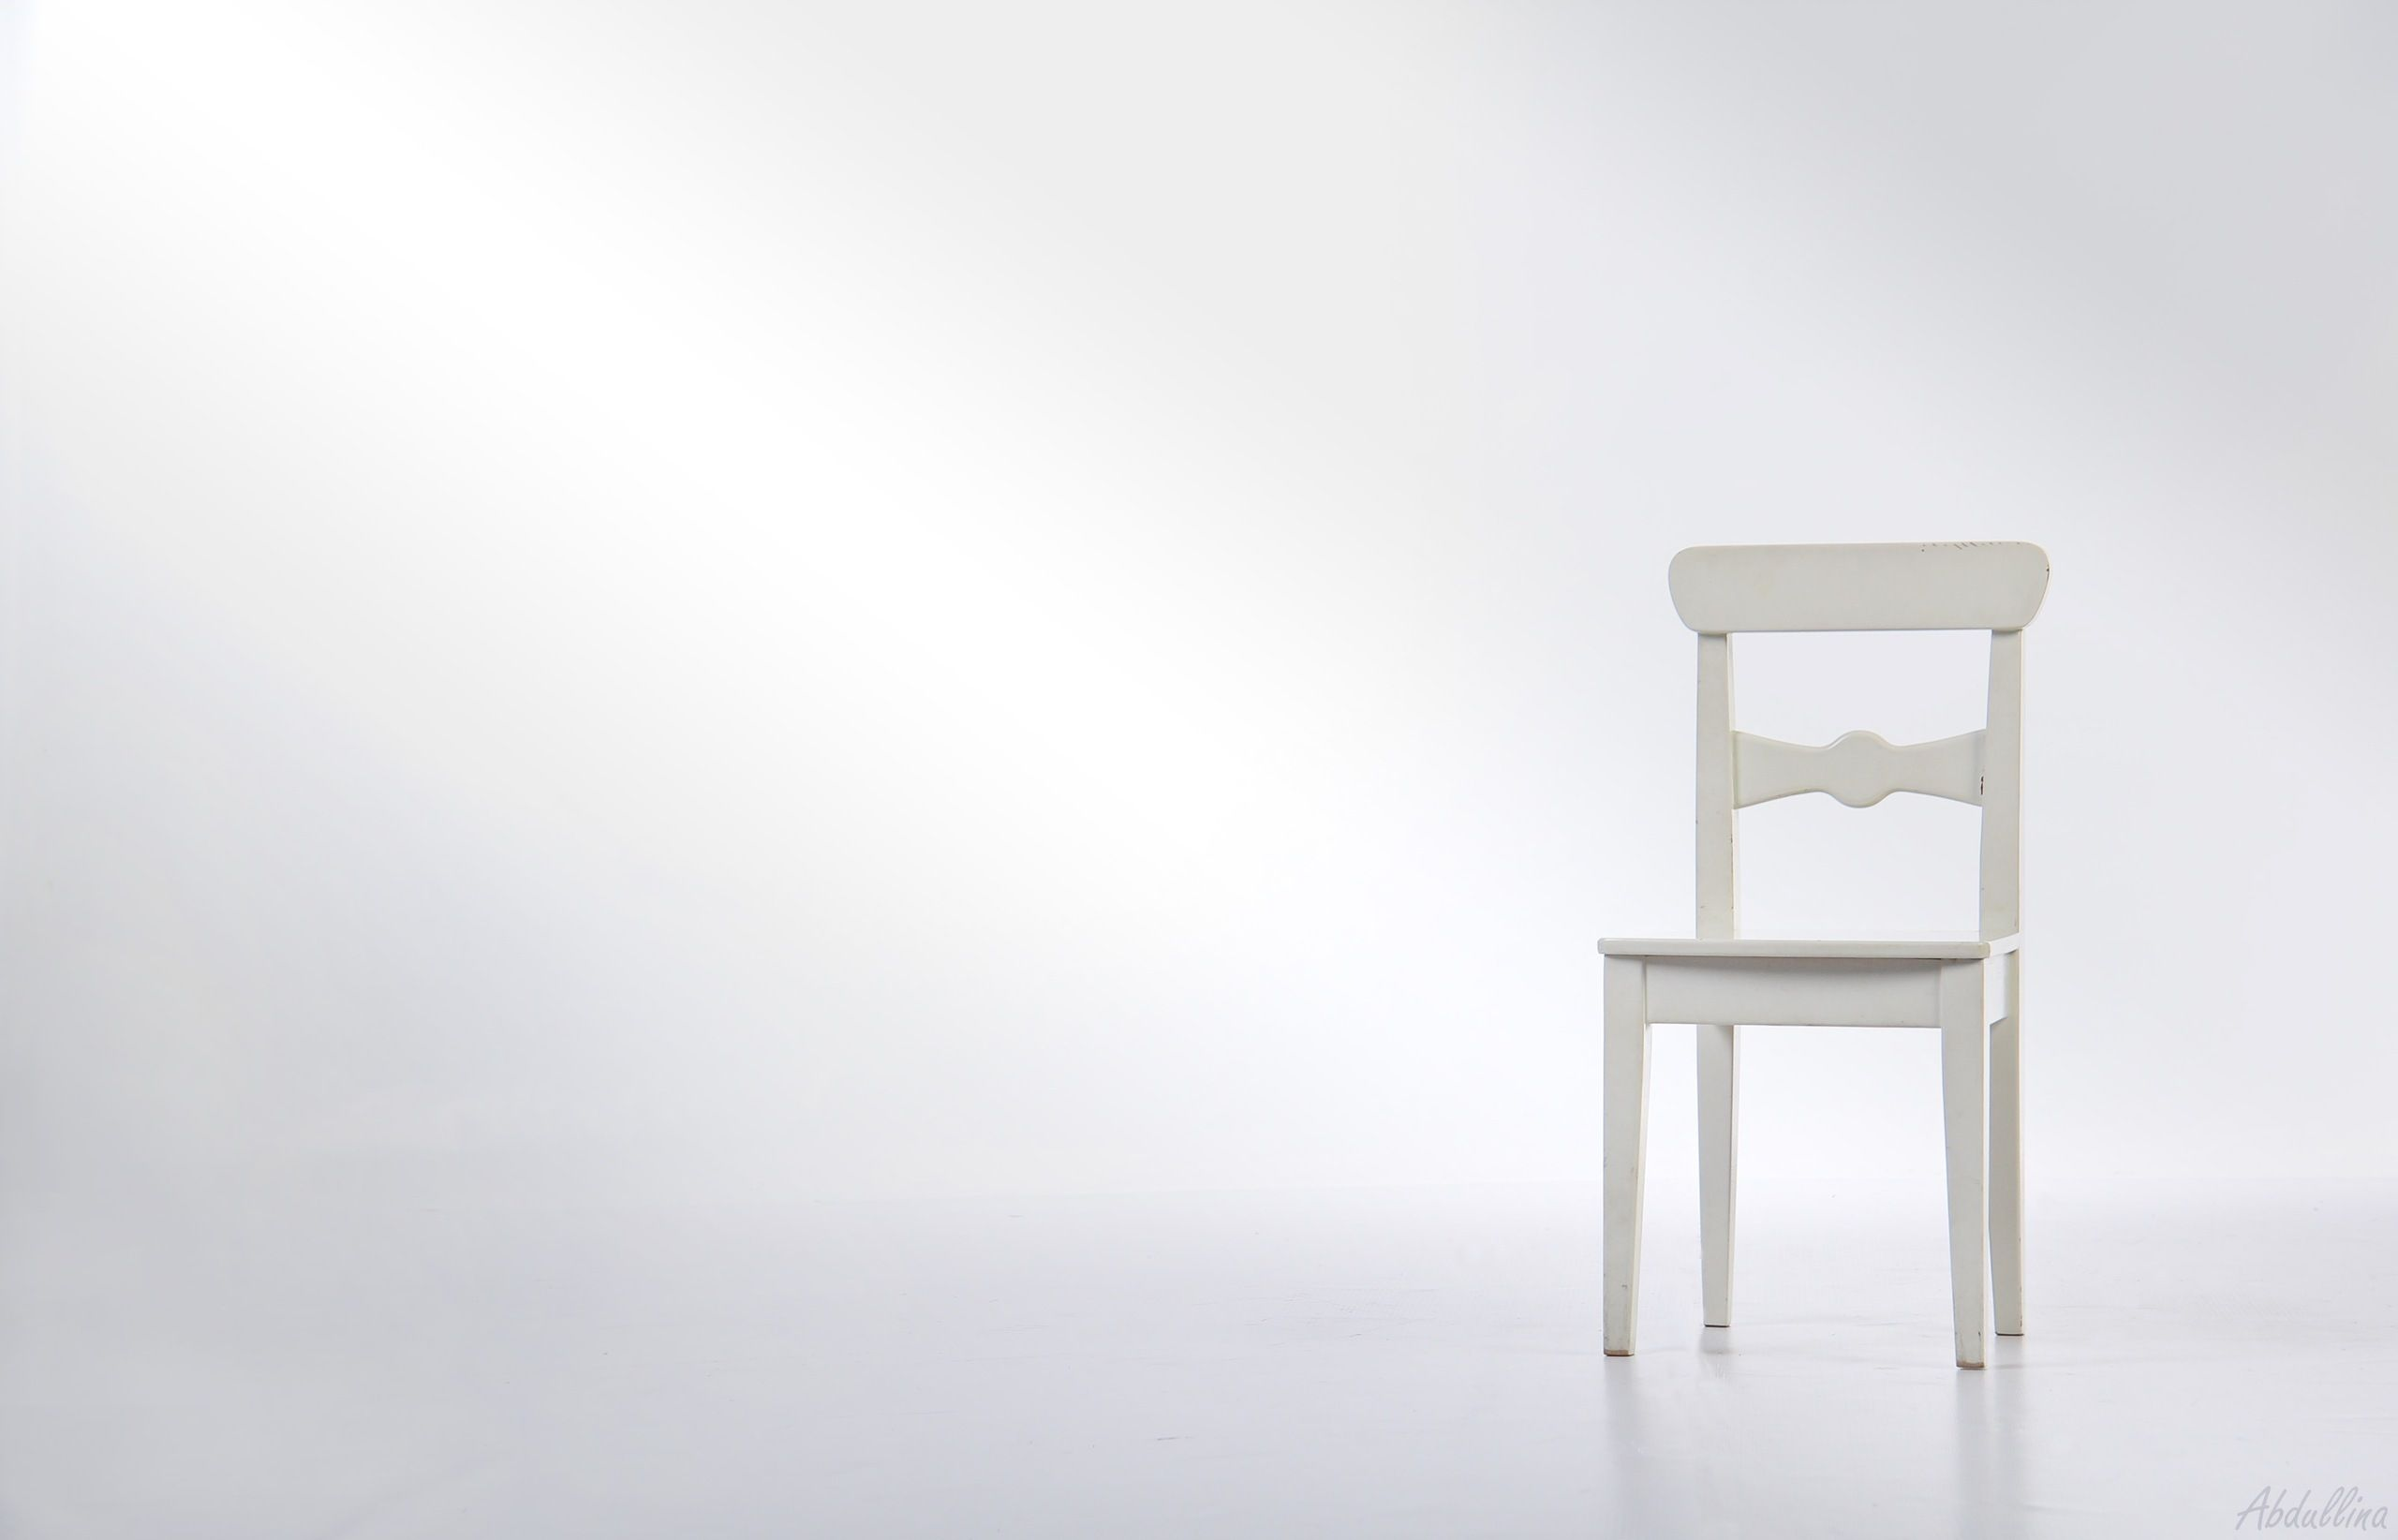 A White Chair In Room Misc Stuff Wallpapers HD Wallpaper Download For IPad And IPhone